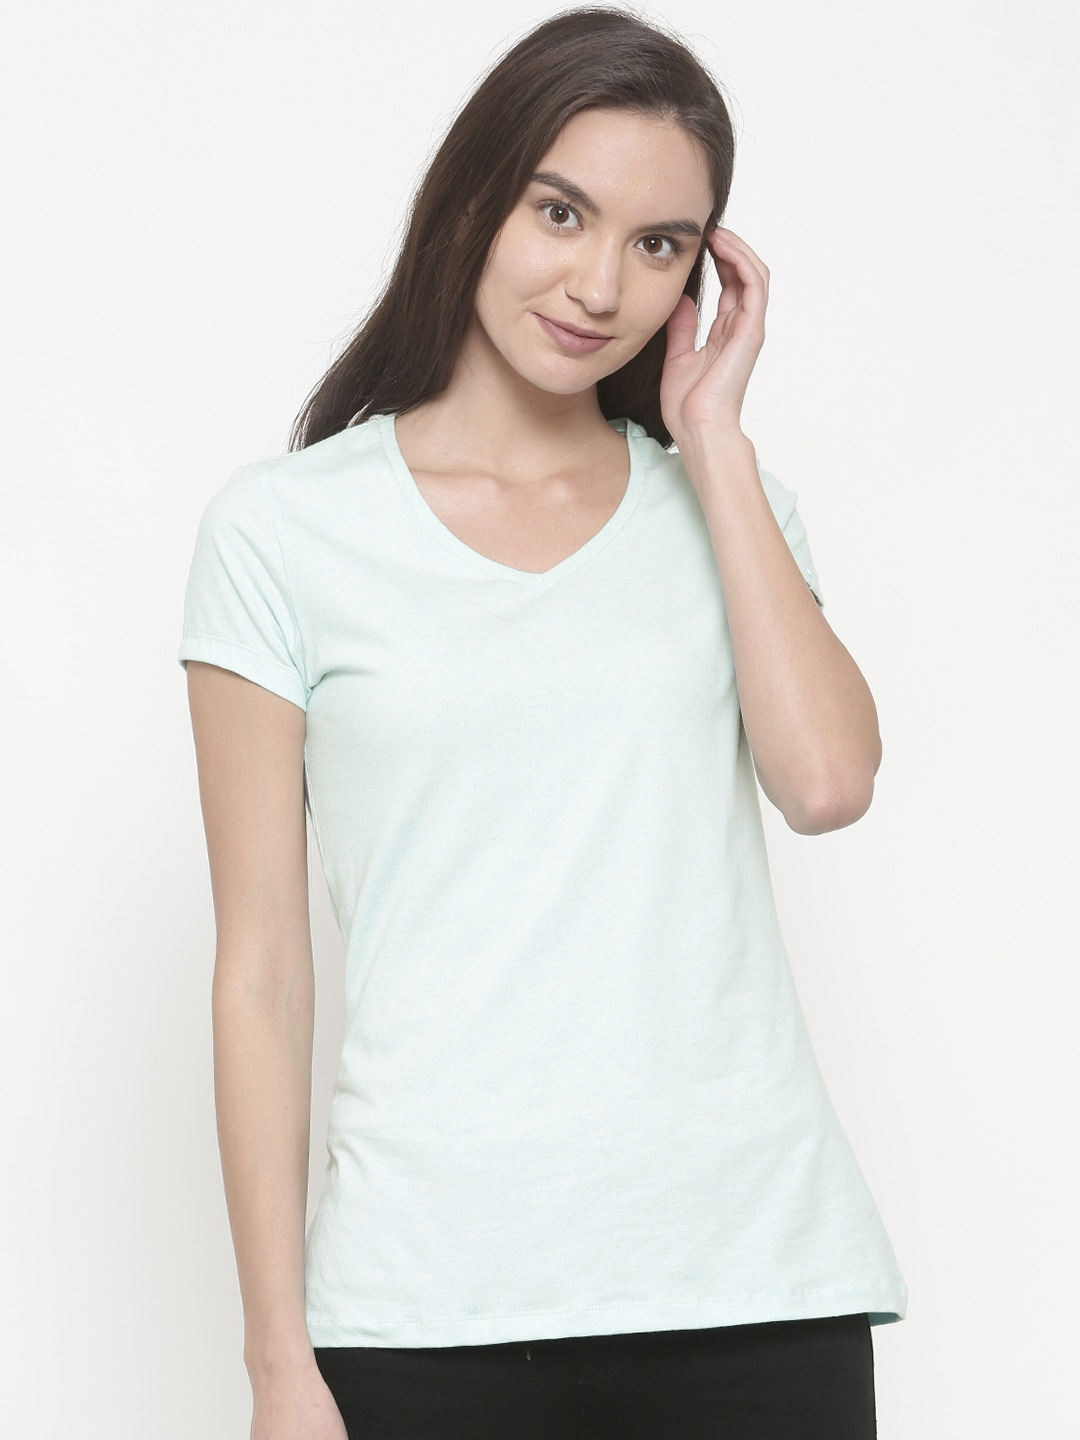 5637ea7384196 Jockey Cotton Tshirts For Women - Buy Jockey Cotton Tshirts For Women  online in India